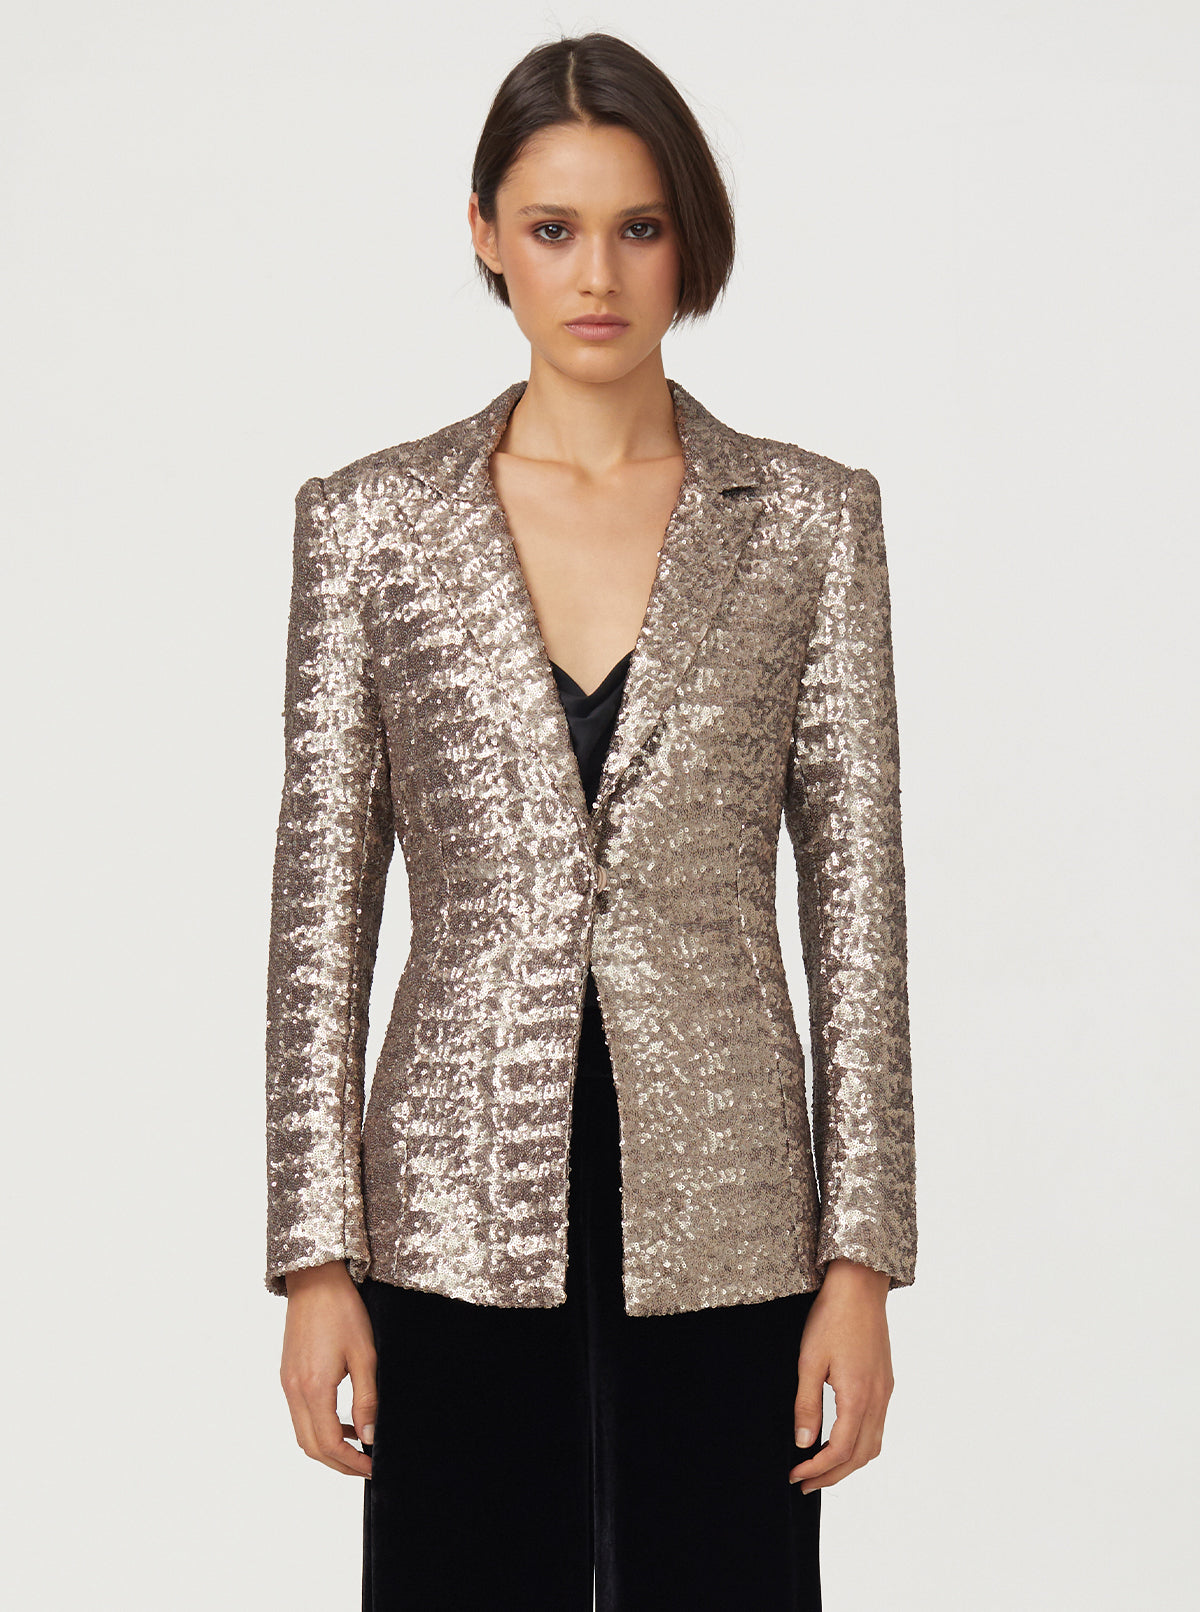 Moonlight Sequin Jacket